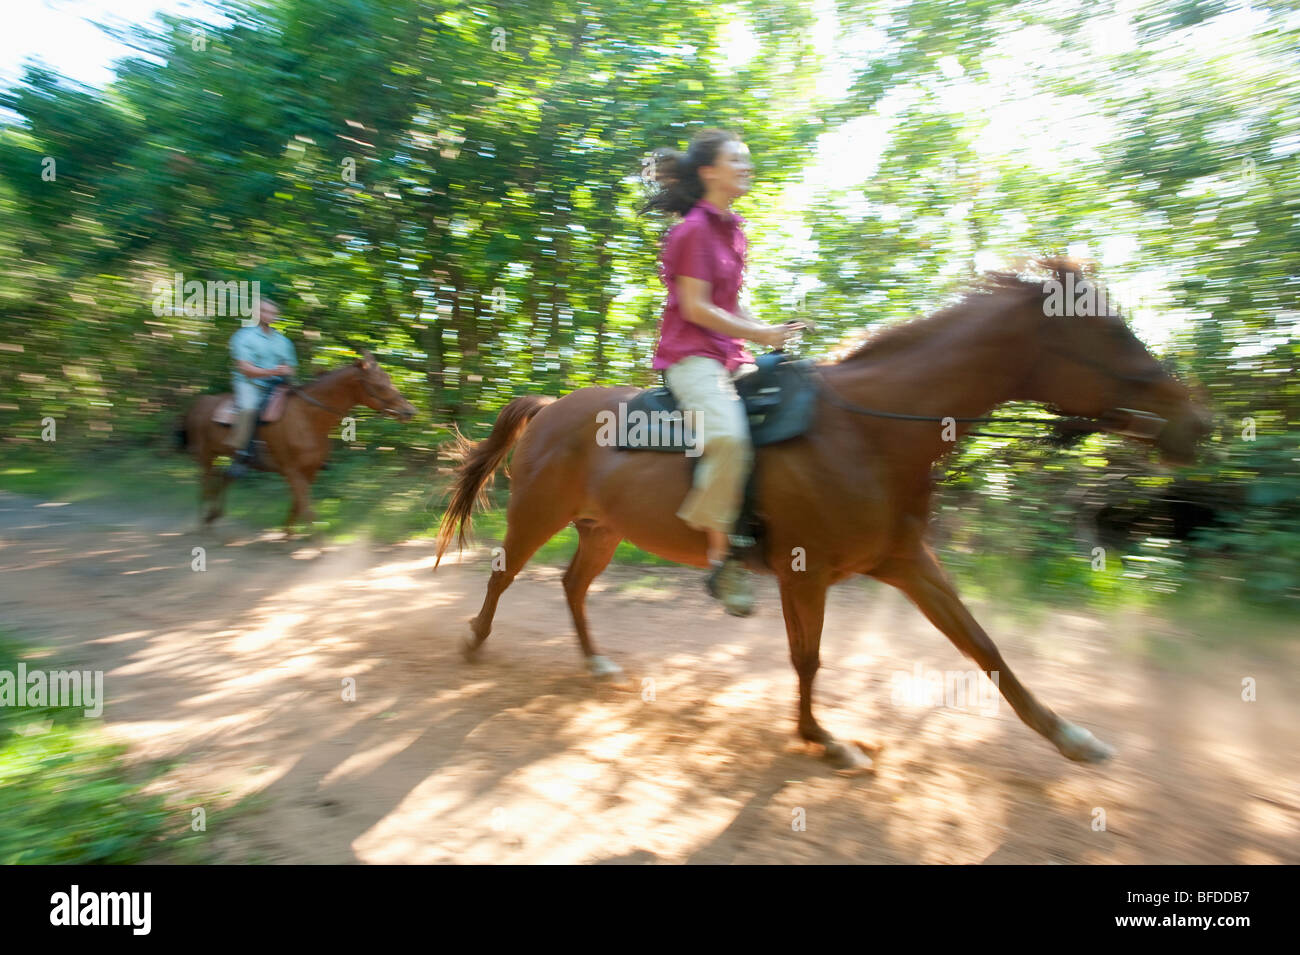 A man and woman horseback ride in Florida. (motion blur) - Stock Image